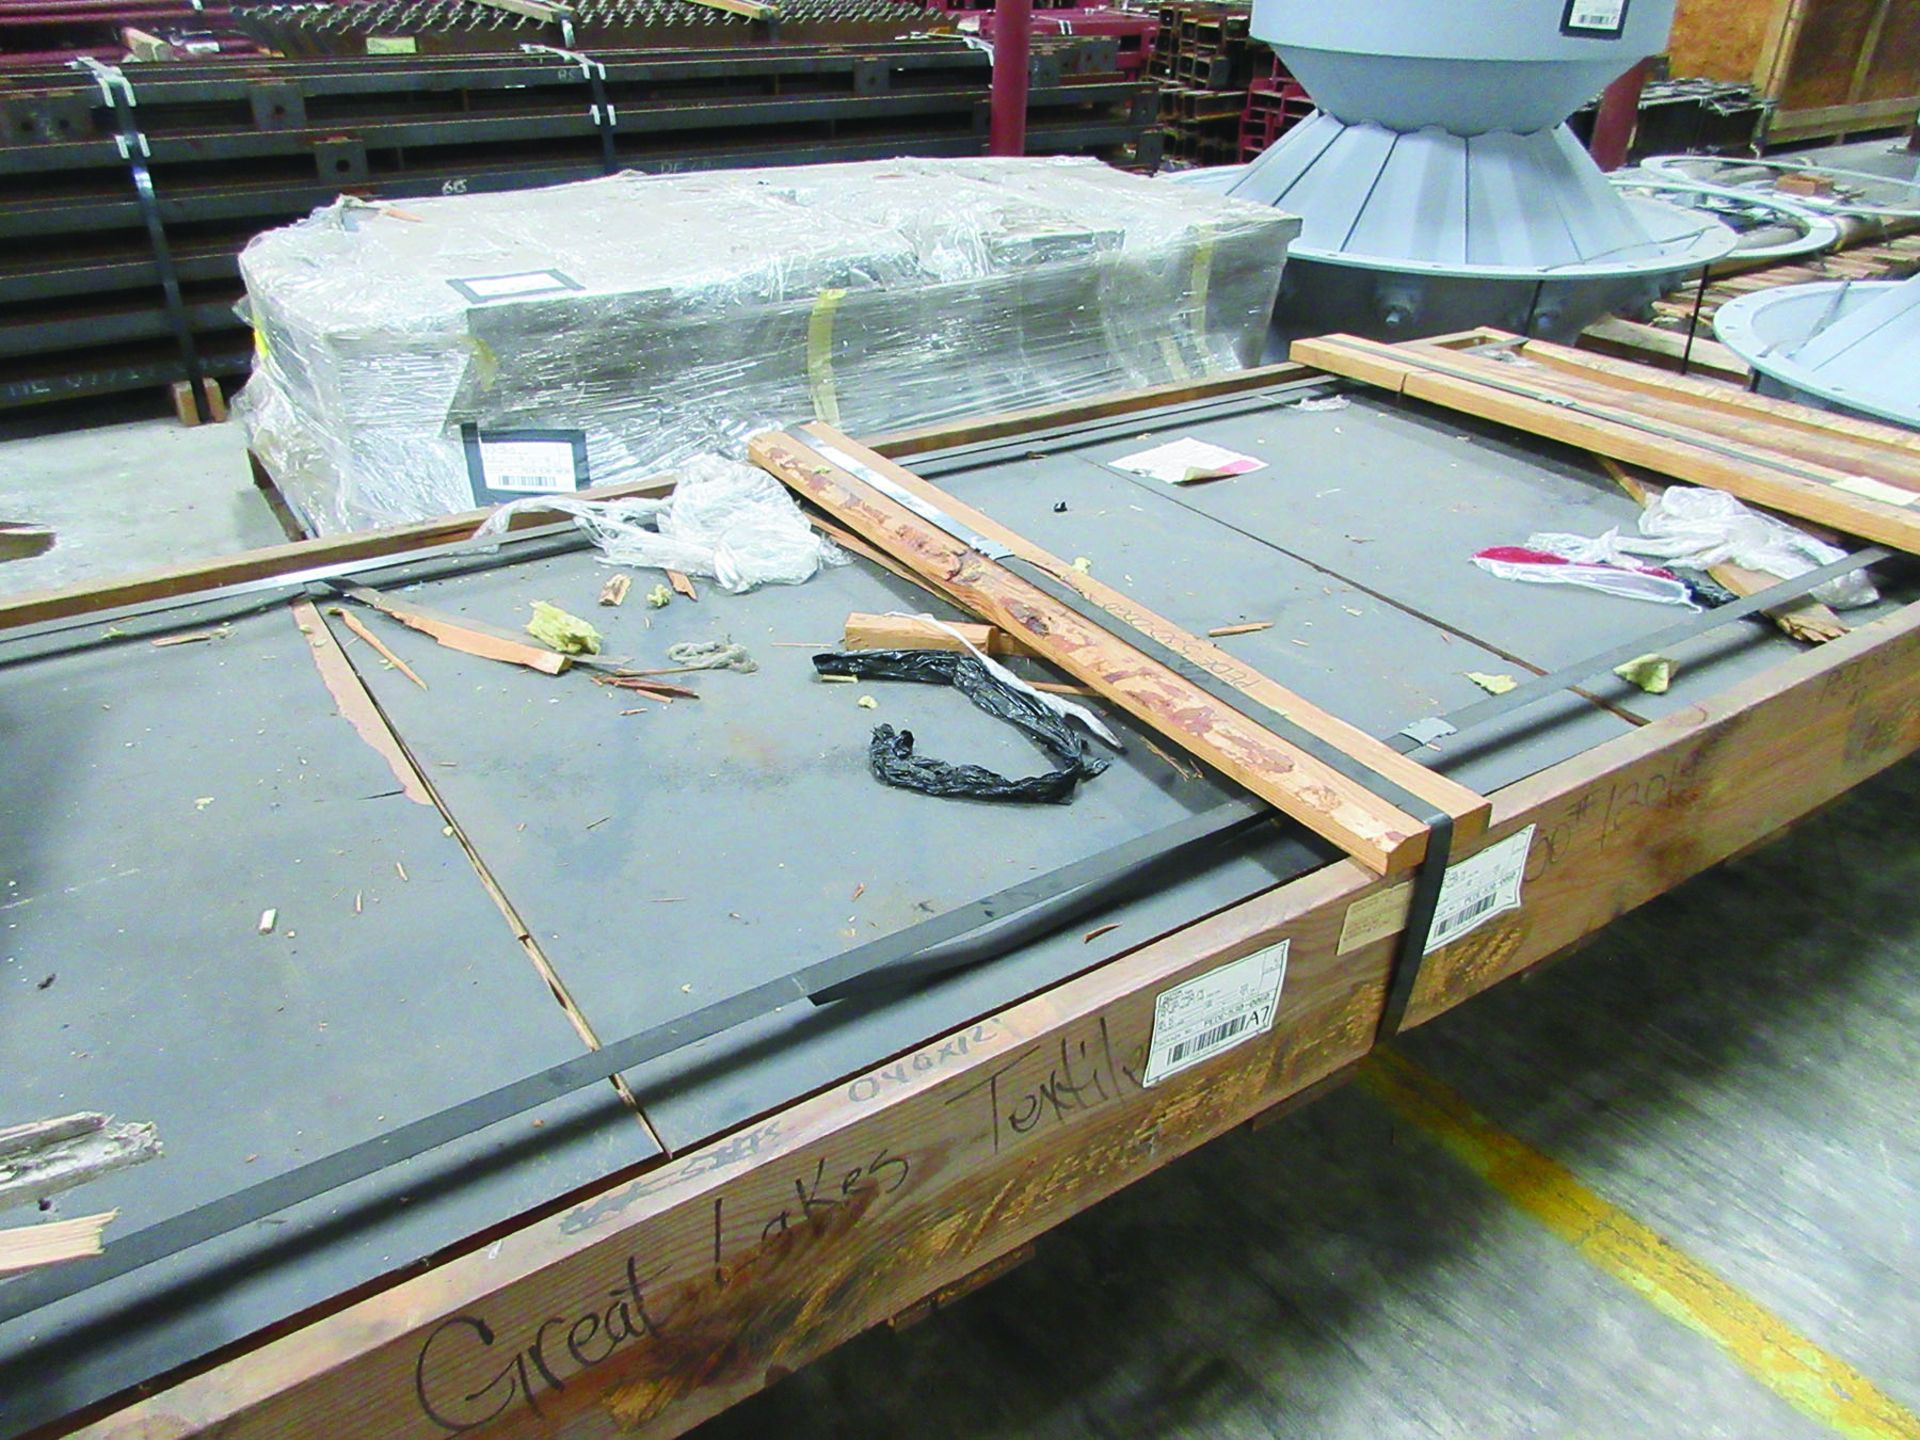 LOT OF ASSORTED PARTS: BARSETS, SHAFT COUPLINGS, COUPLING GUARDS, AND MORE, GRID A7 - Image 10 of 16